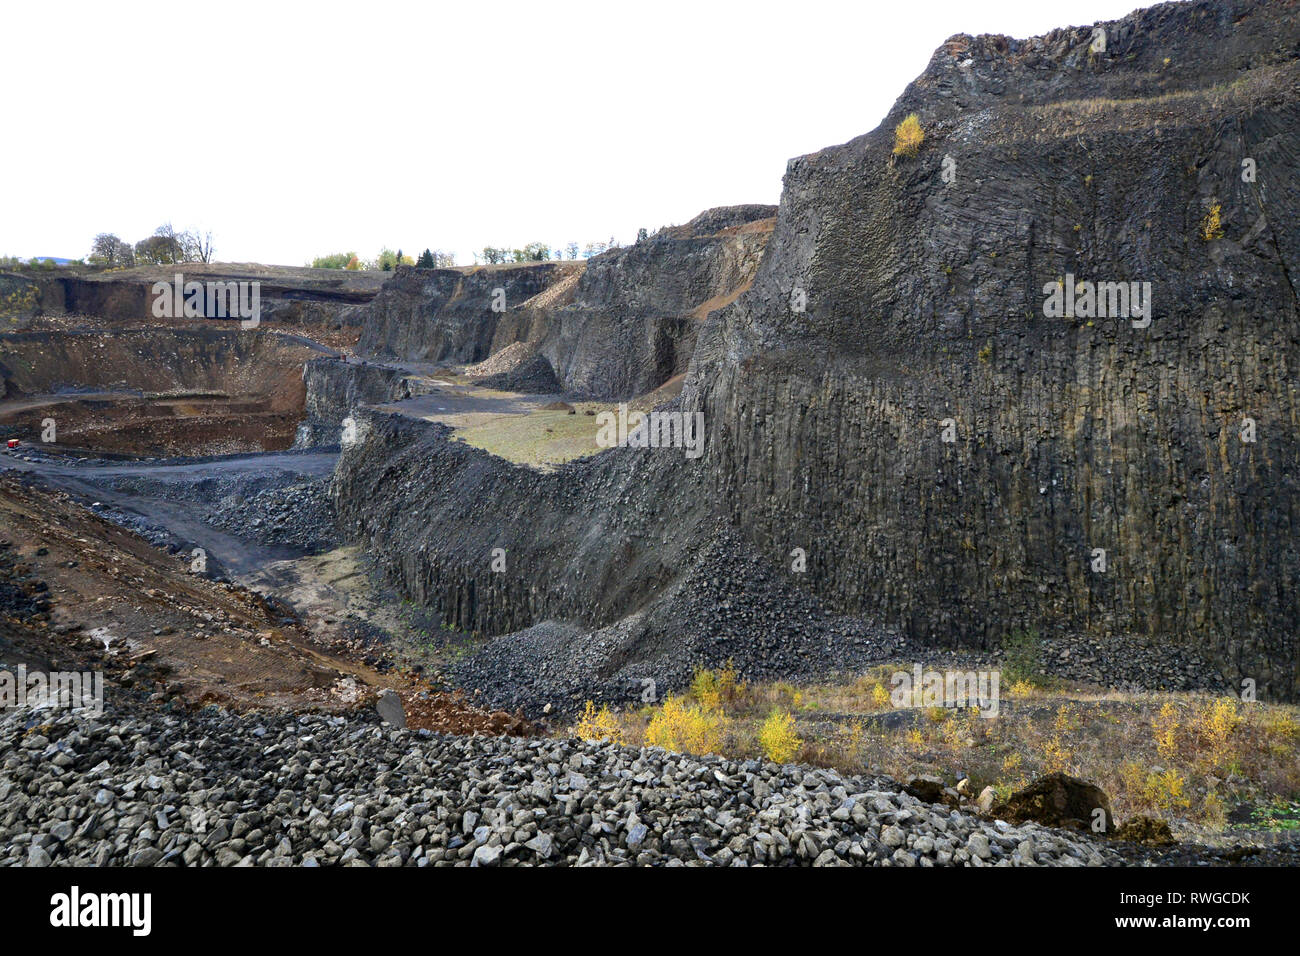 The basalt pit Bauersberg. Rhoen, Bavaria, Germany. Pit with mining area. Rock structures recognizable - Stock Image